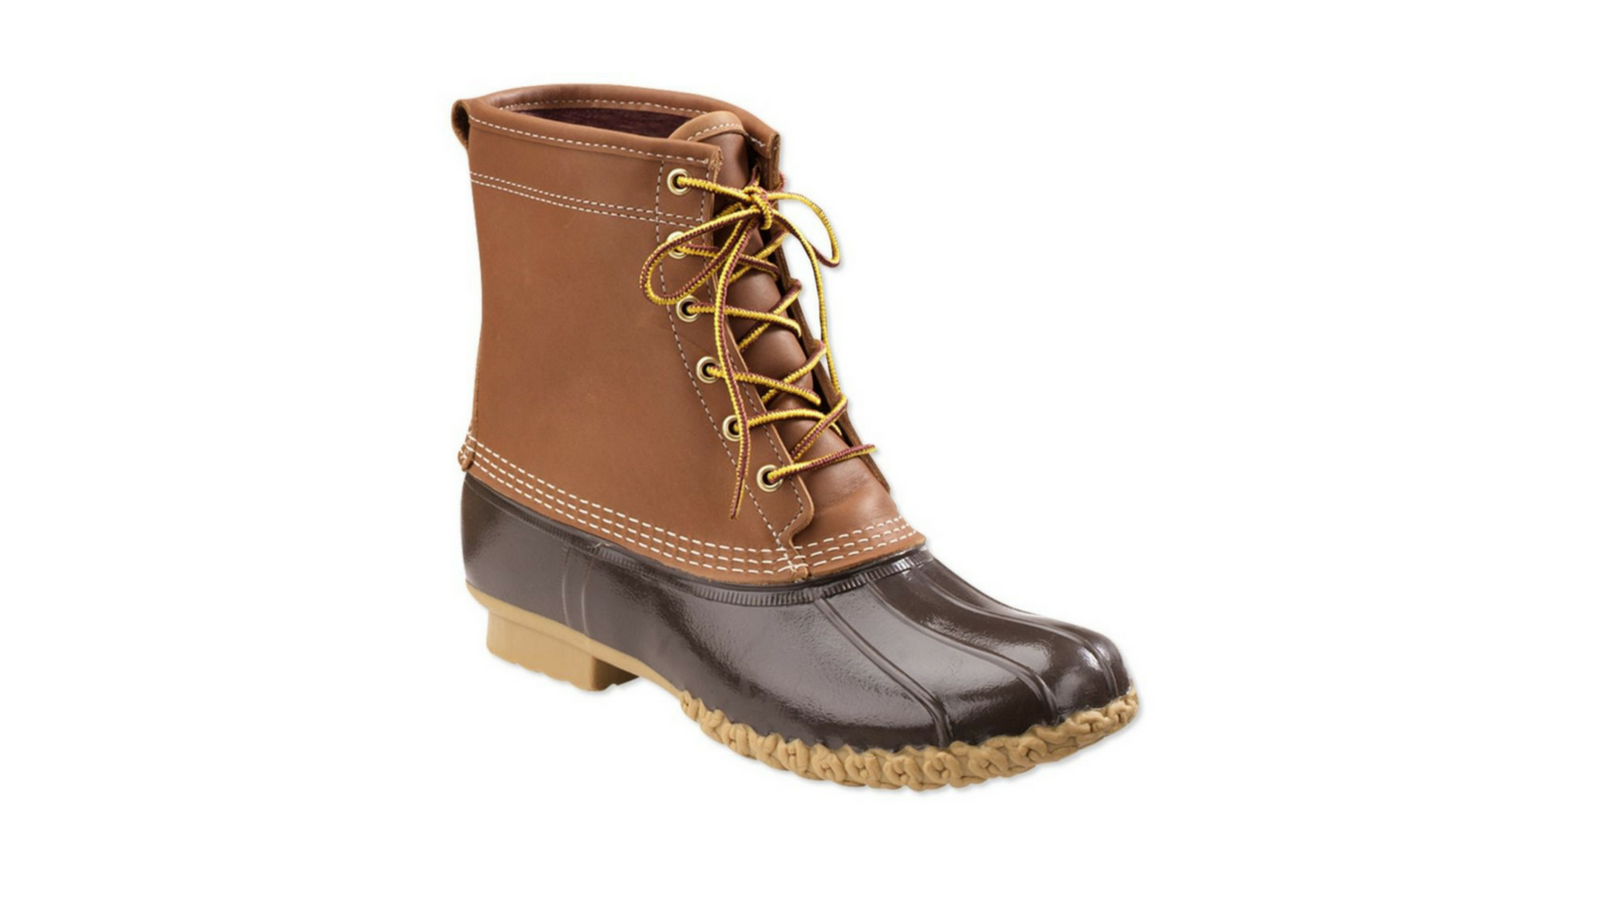 Best Snow Boots Waterproof And Warm Winter Boots Expert